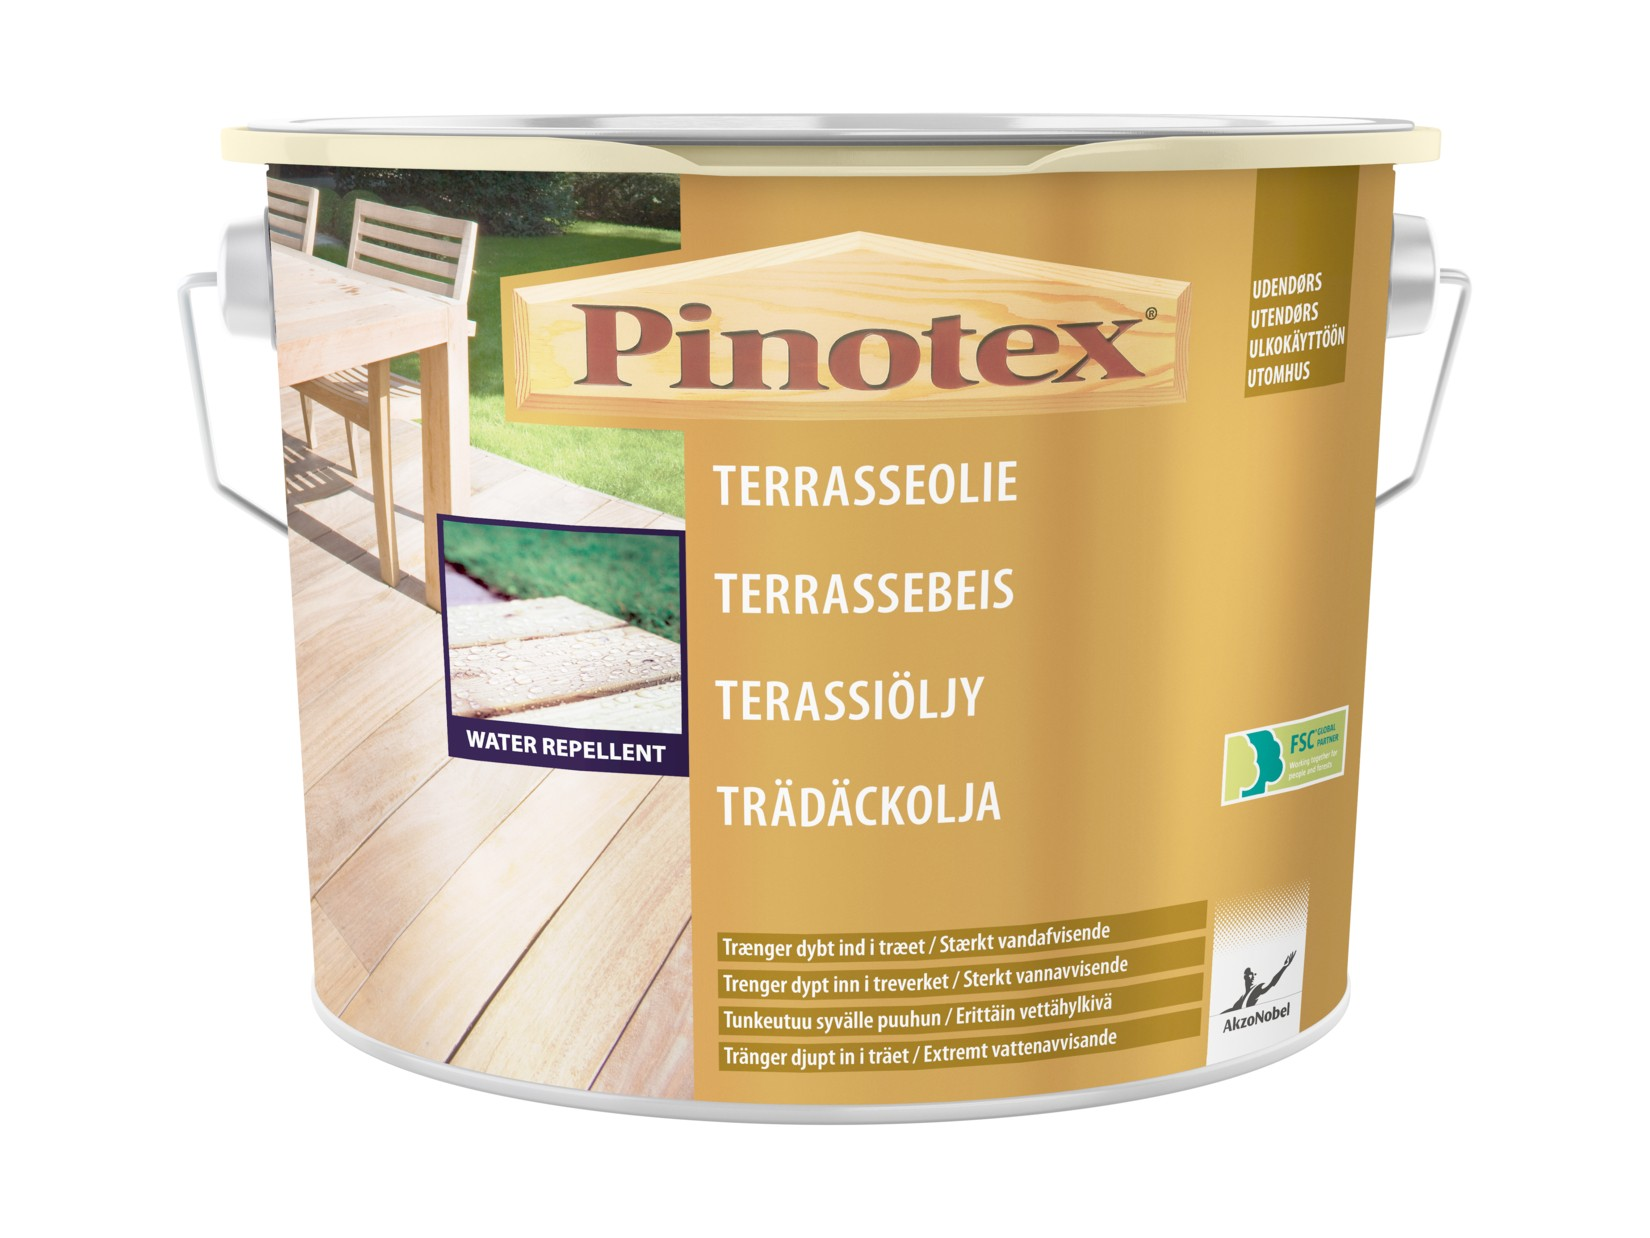 Picture of: Pinotex Terrasseolie 5 Ltr Nordicmaling Dk